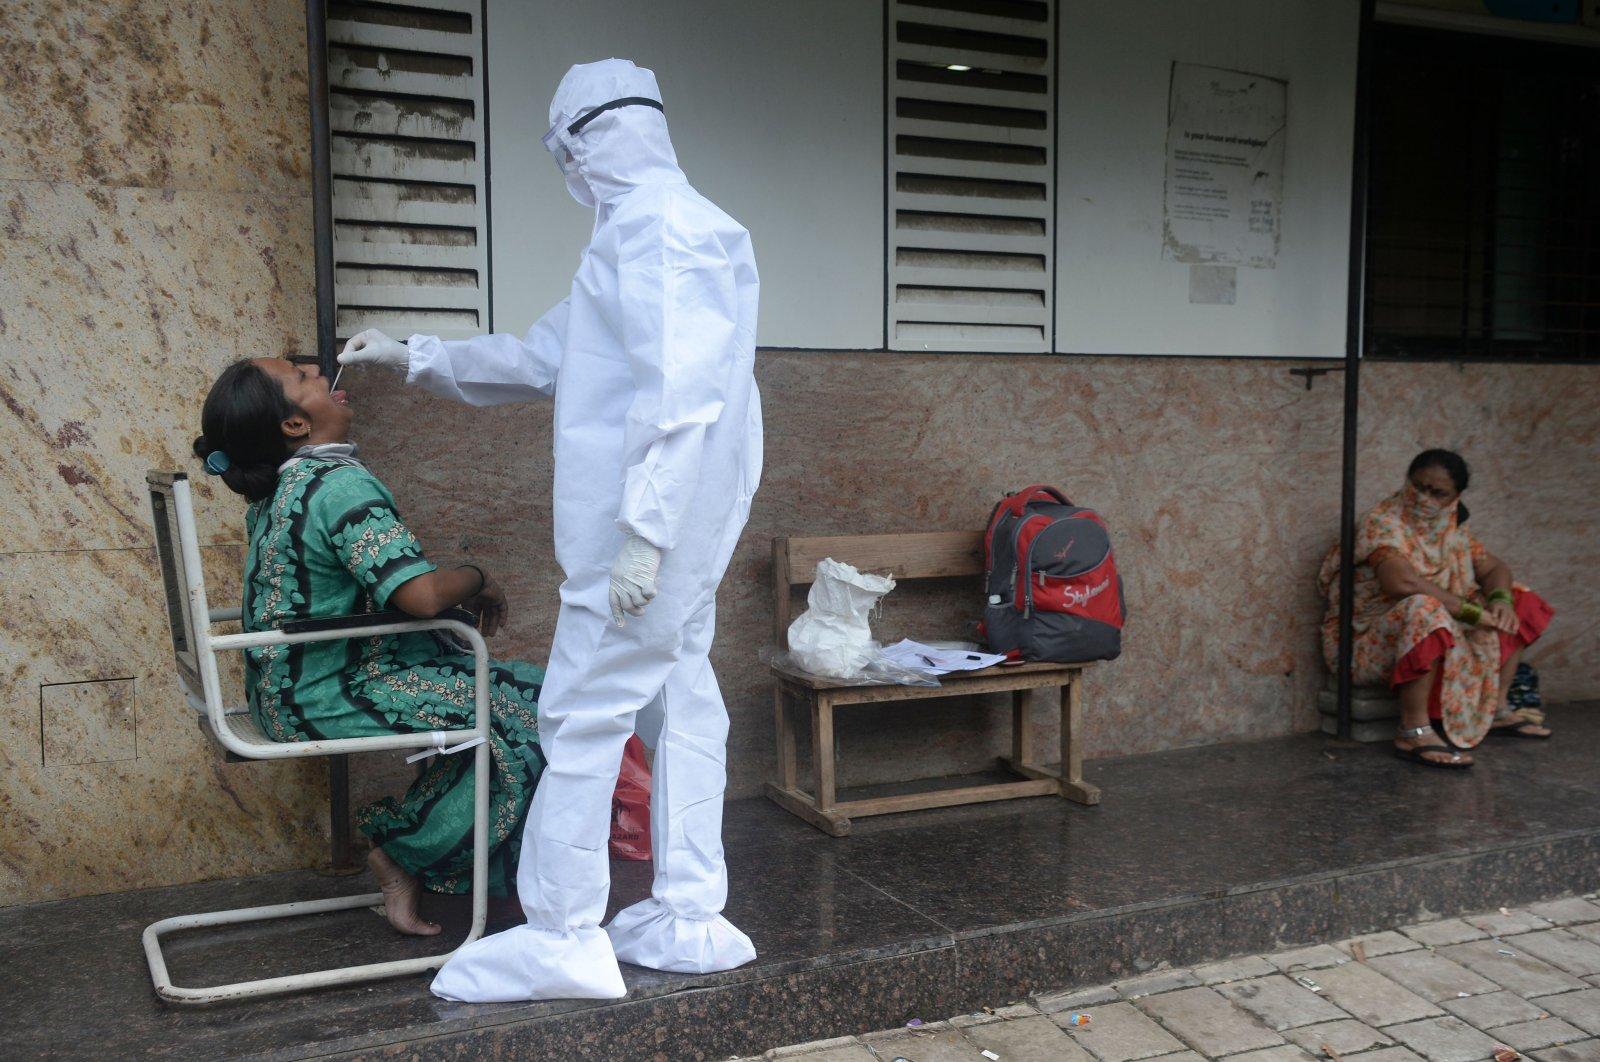 A health worker takes a throat swab during a COVID-19 screening in Mumbai on Sept. 25, 2020. (AFP Photo)